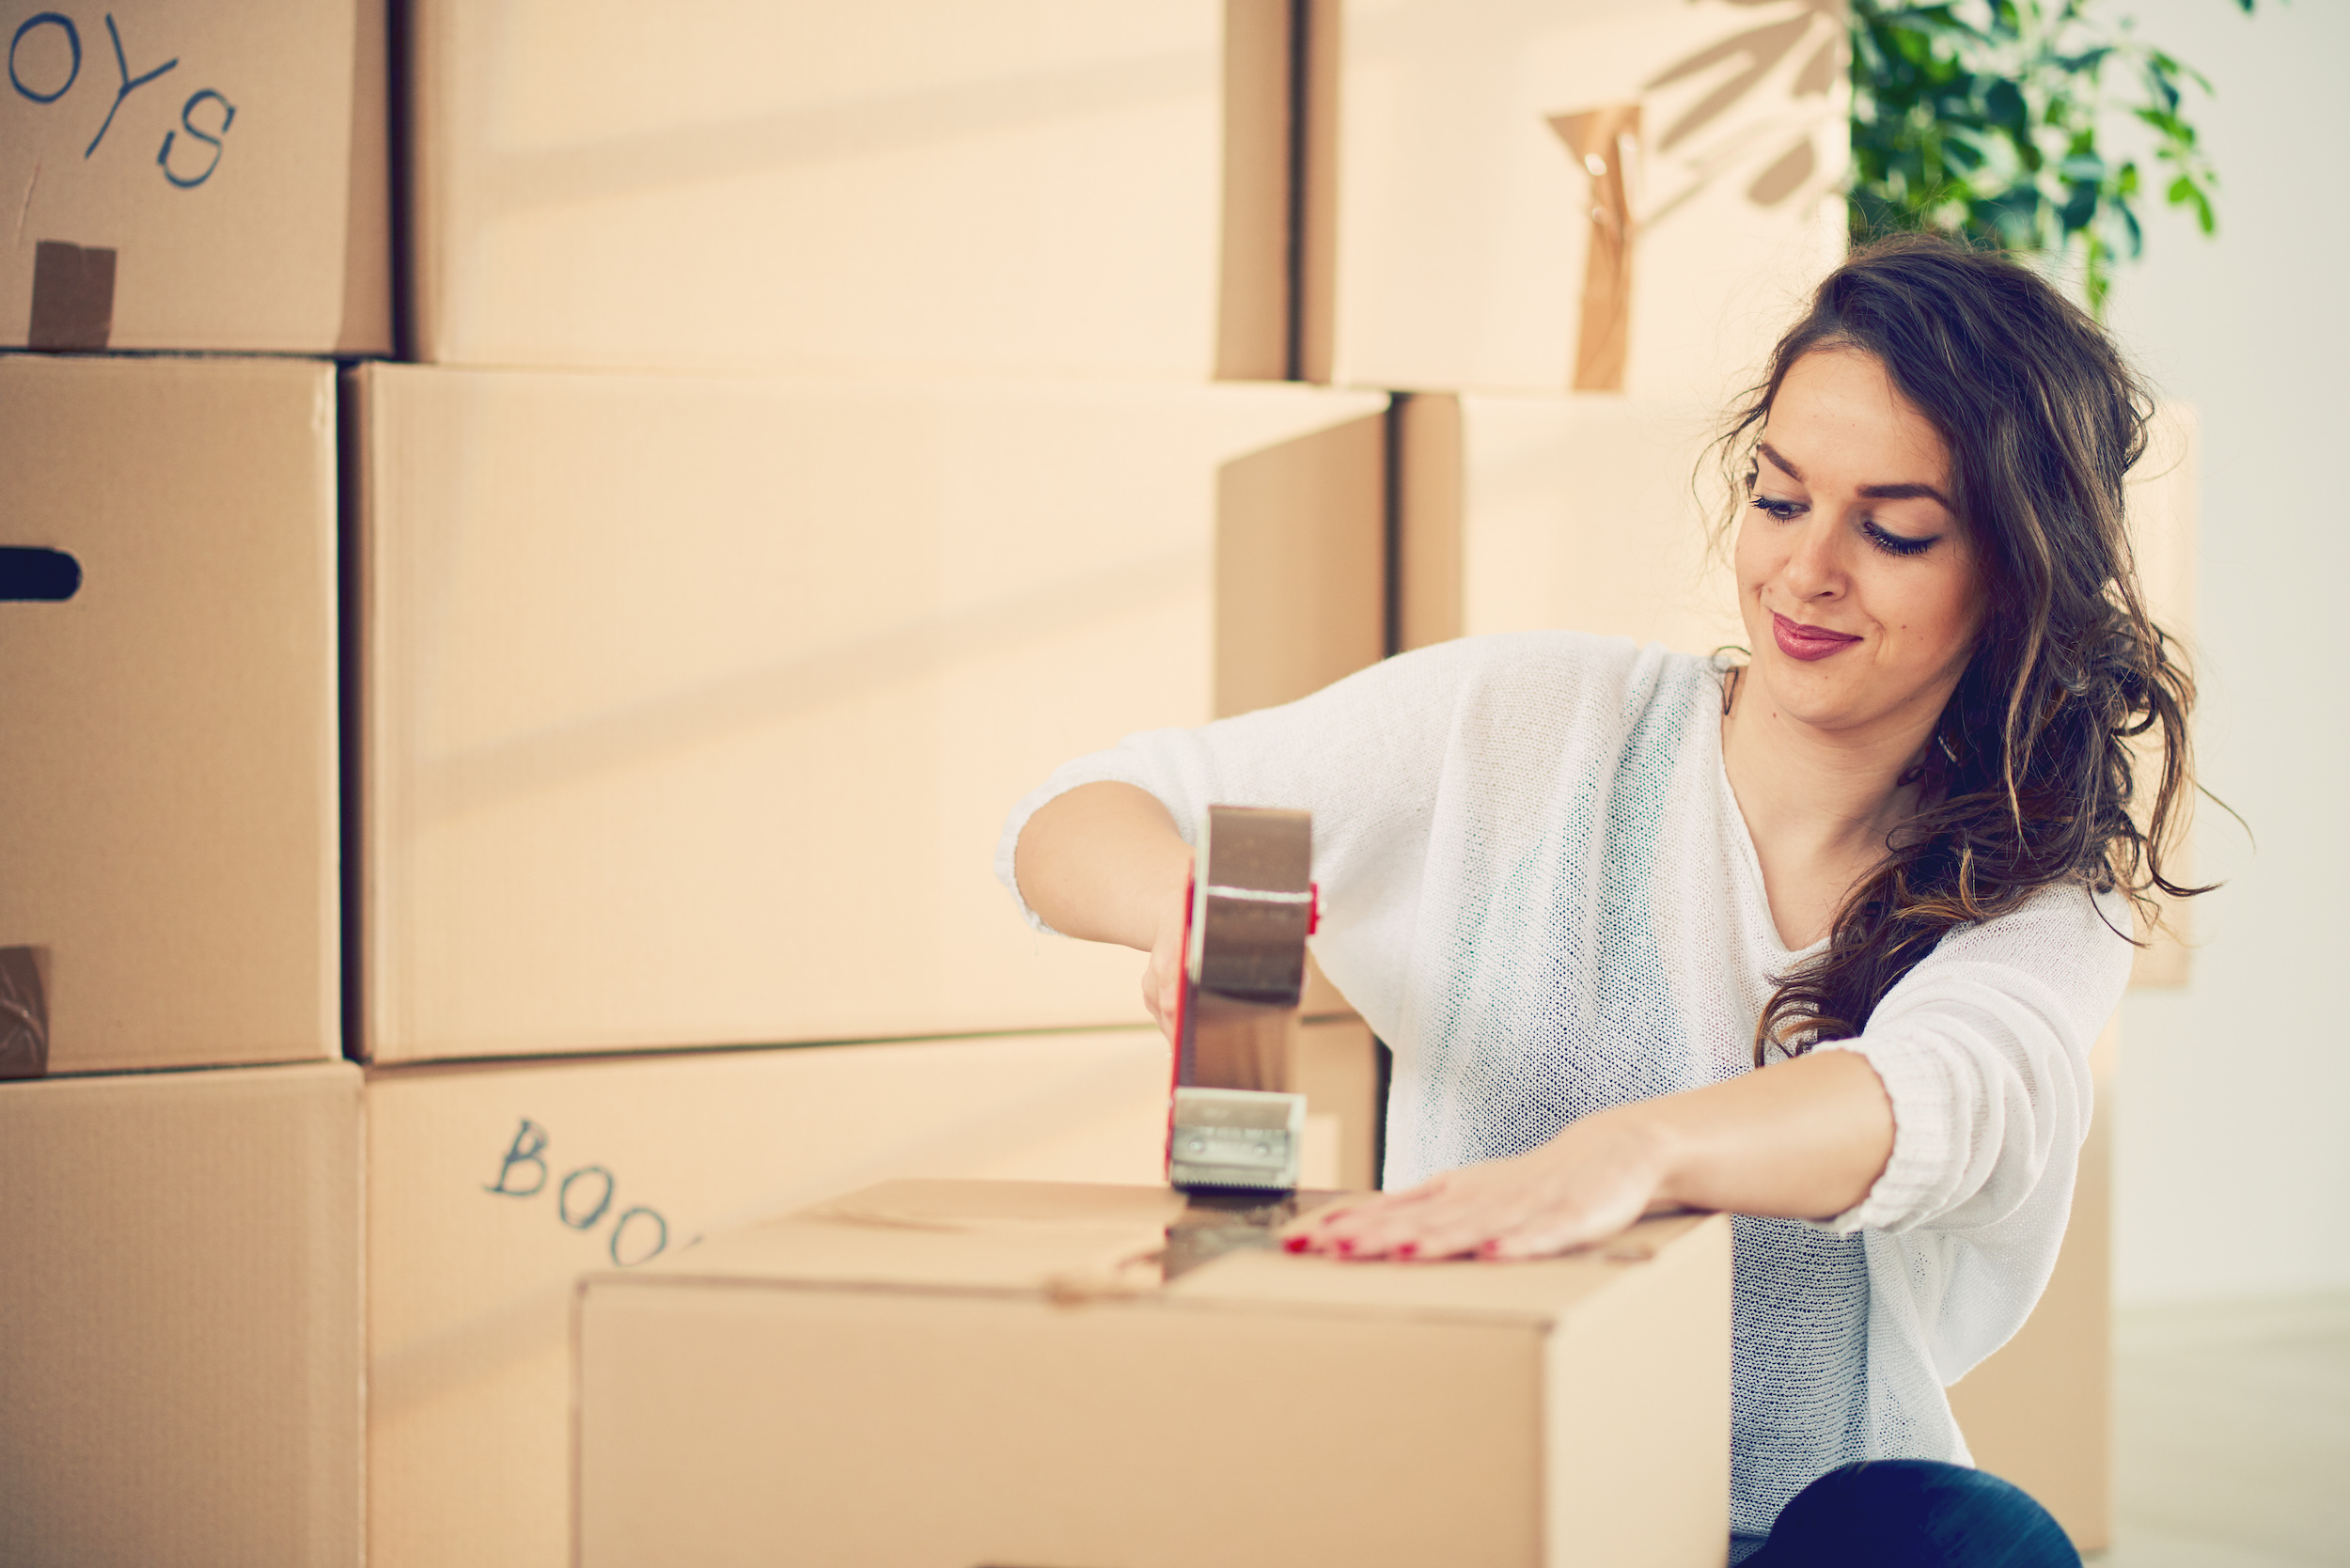 Packing Fragile, Personal Possessions: How We Pack Our Moving Boxes